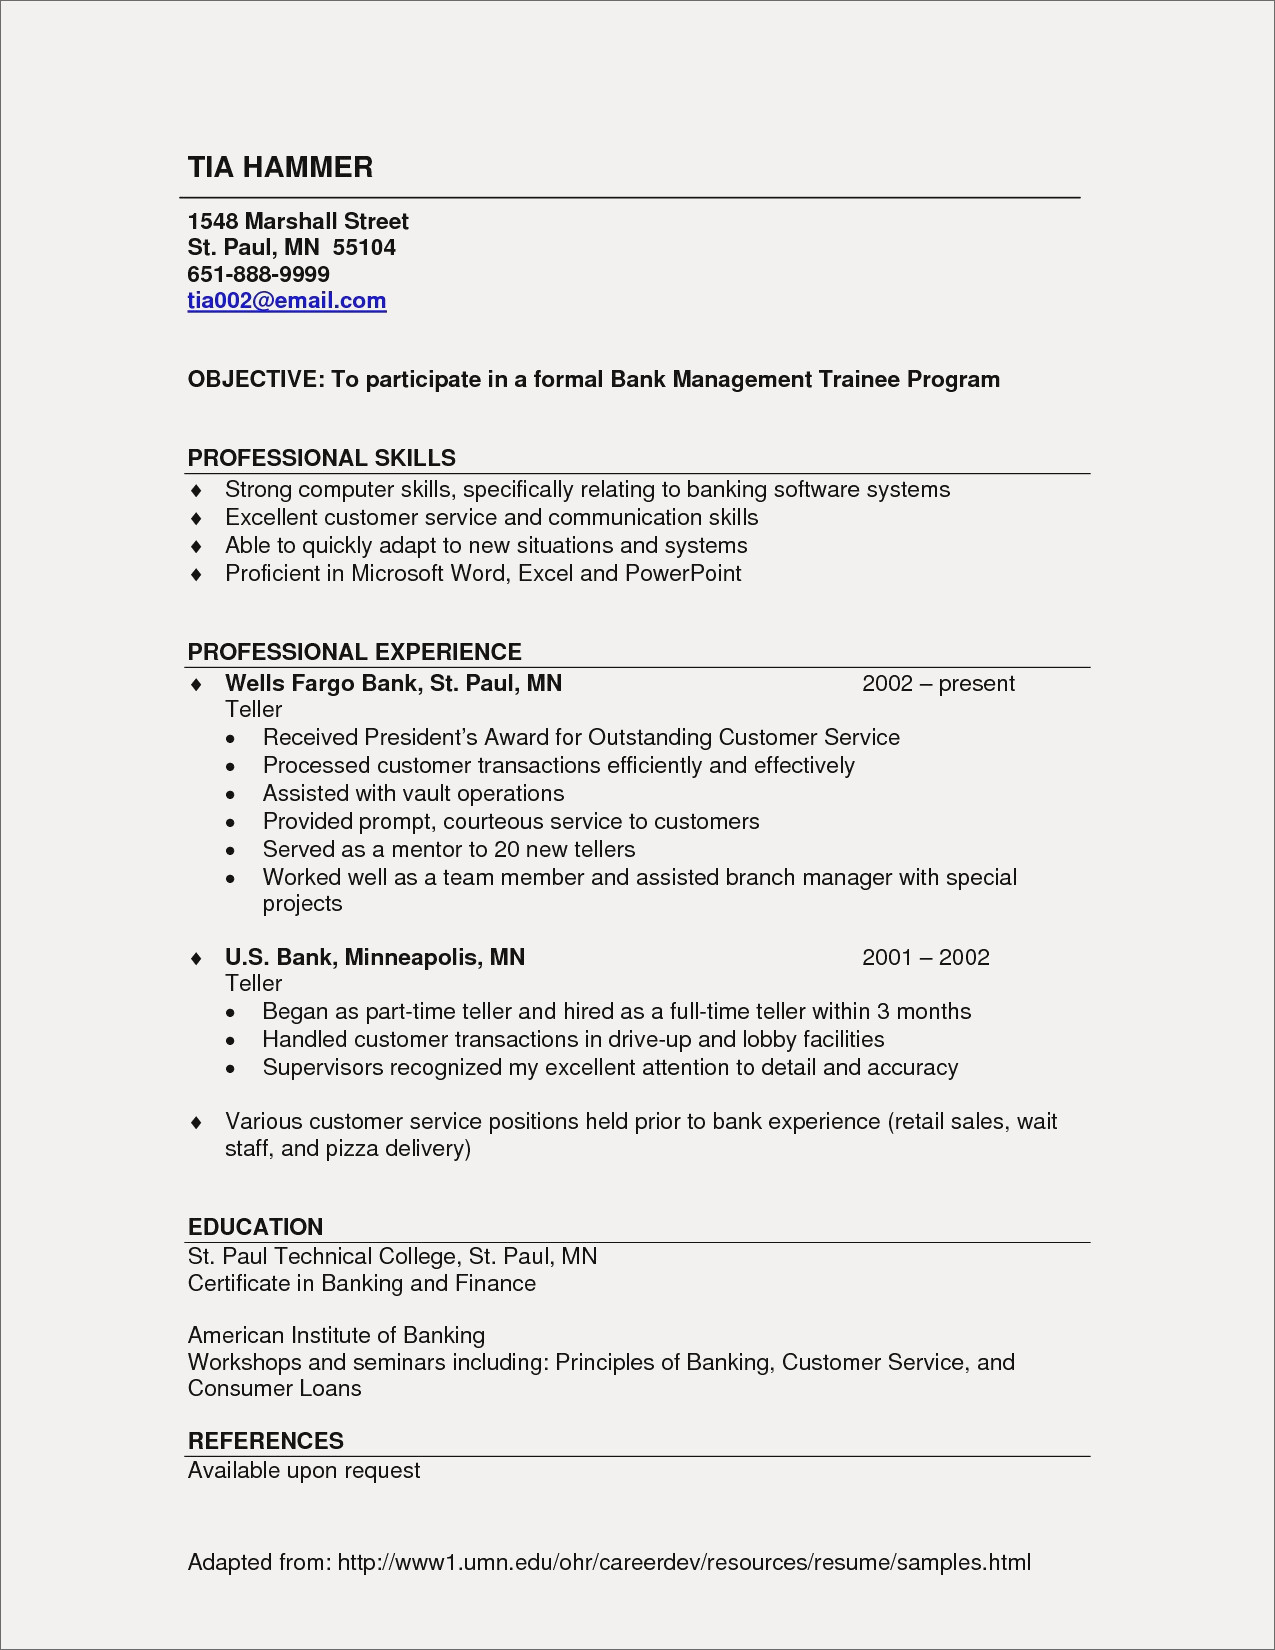 marshall resume template Collection-19 Fresh Customer Service Resume Example 14-h